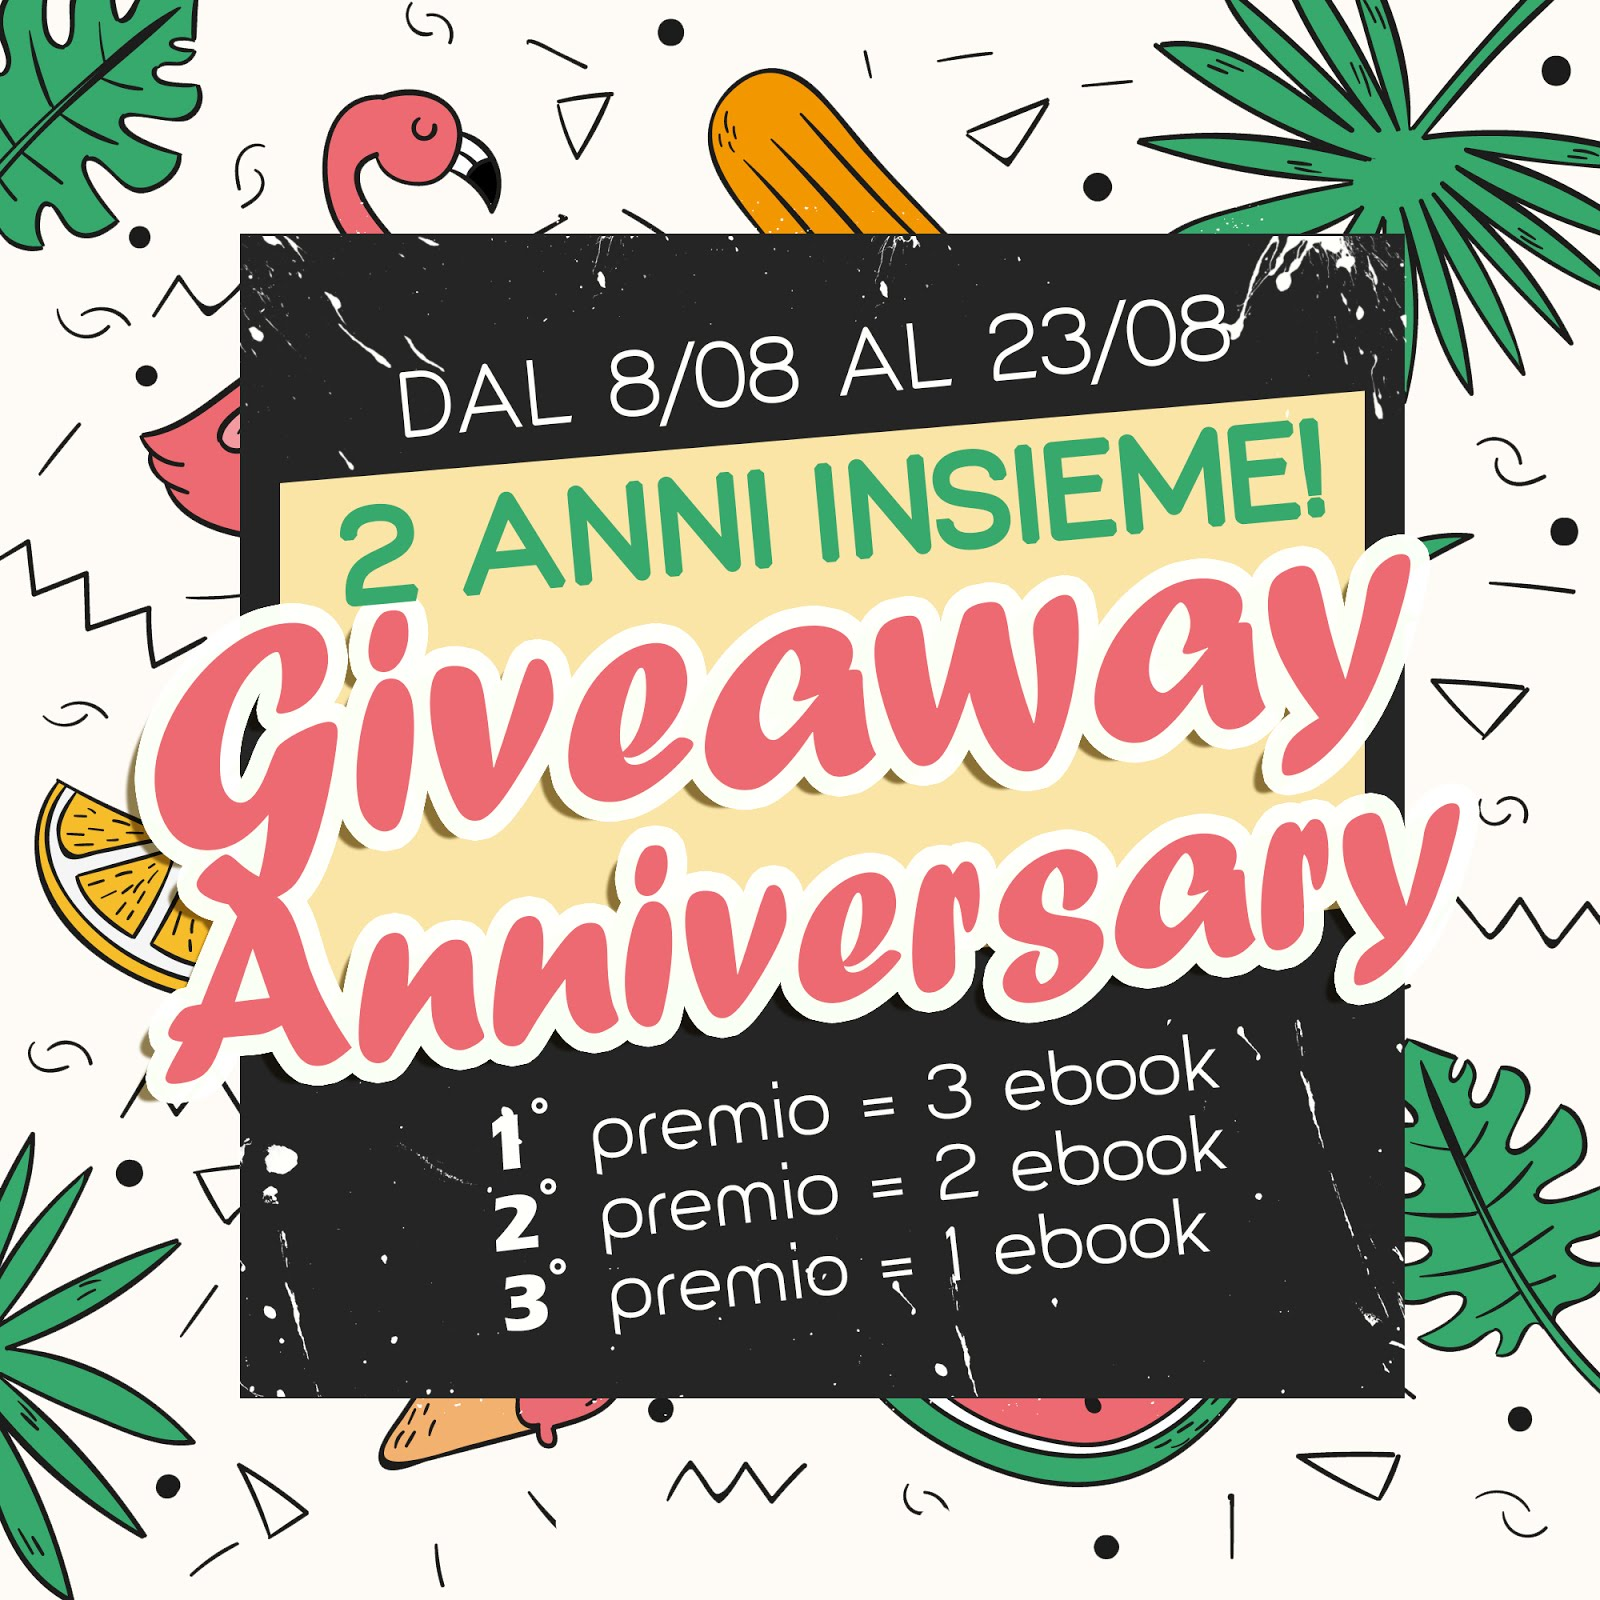 Giveaway Anniversary